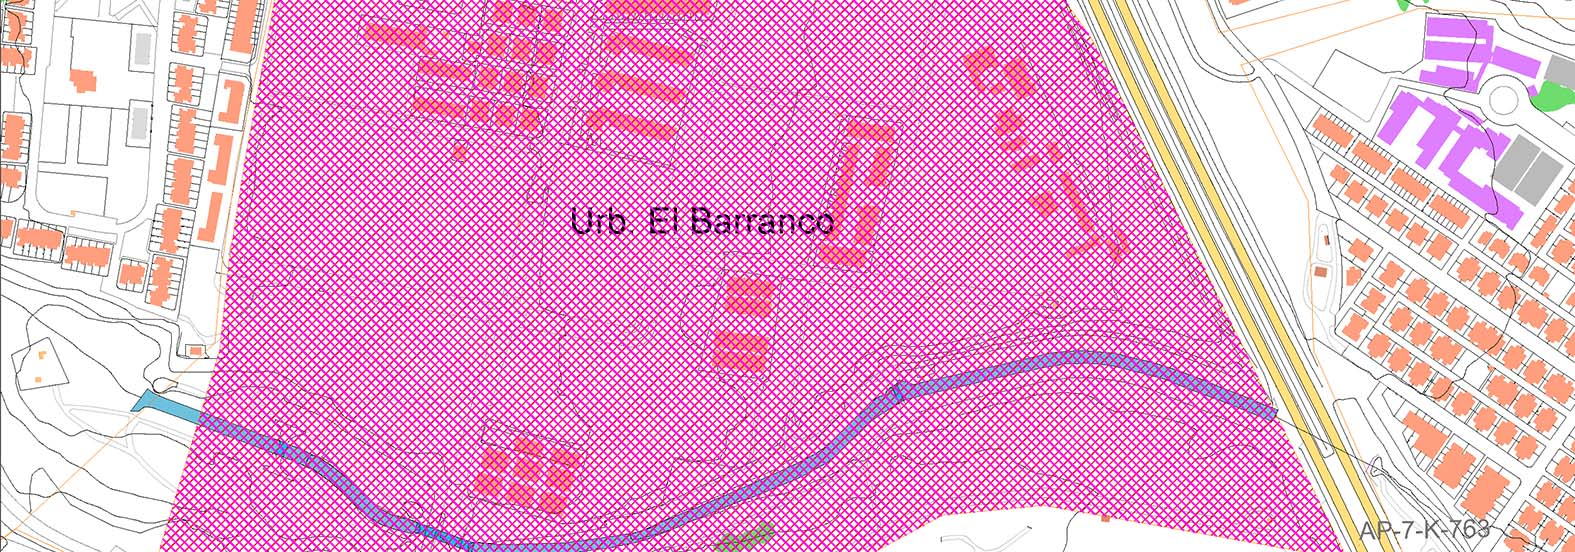 el_barranco_e2_small